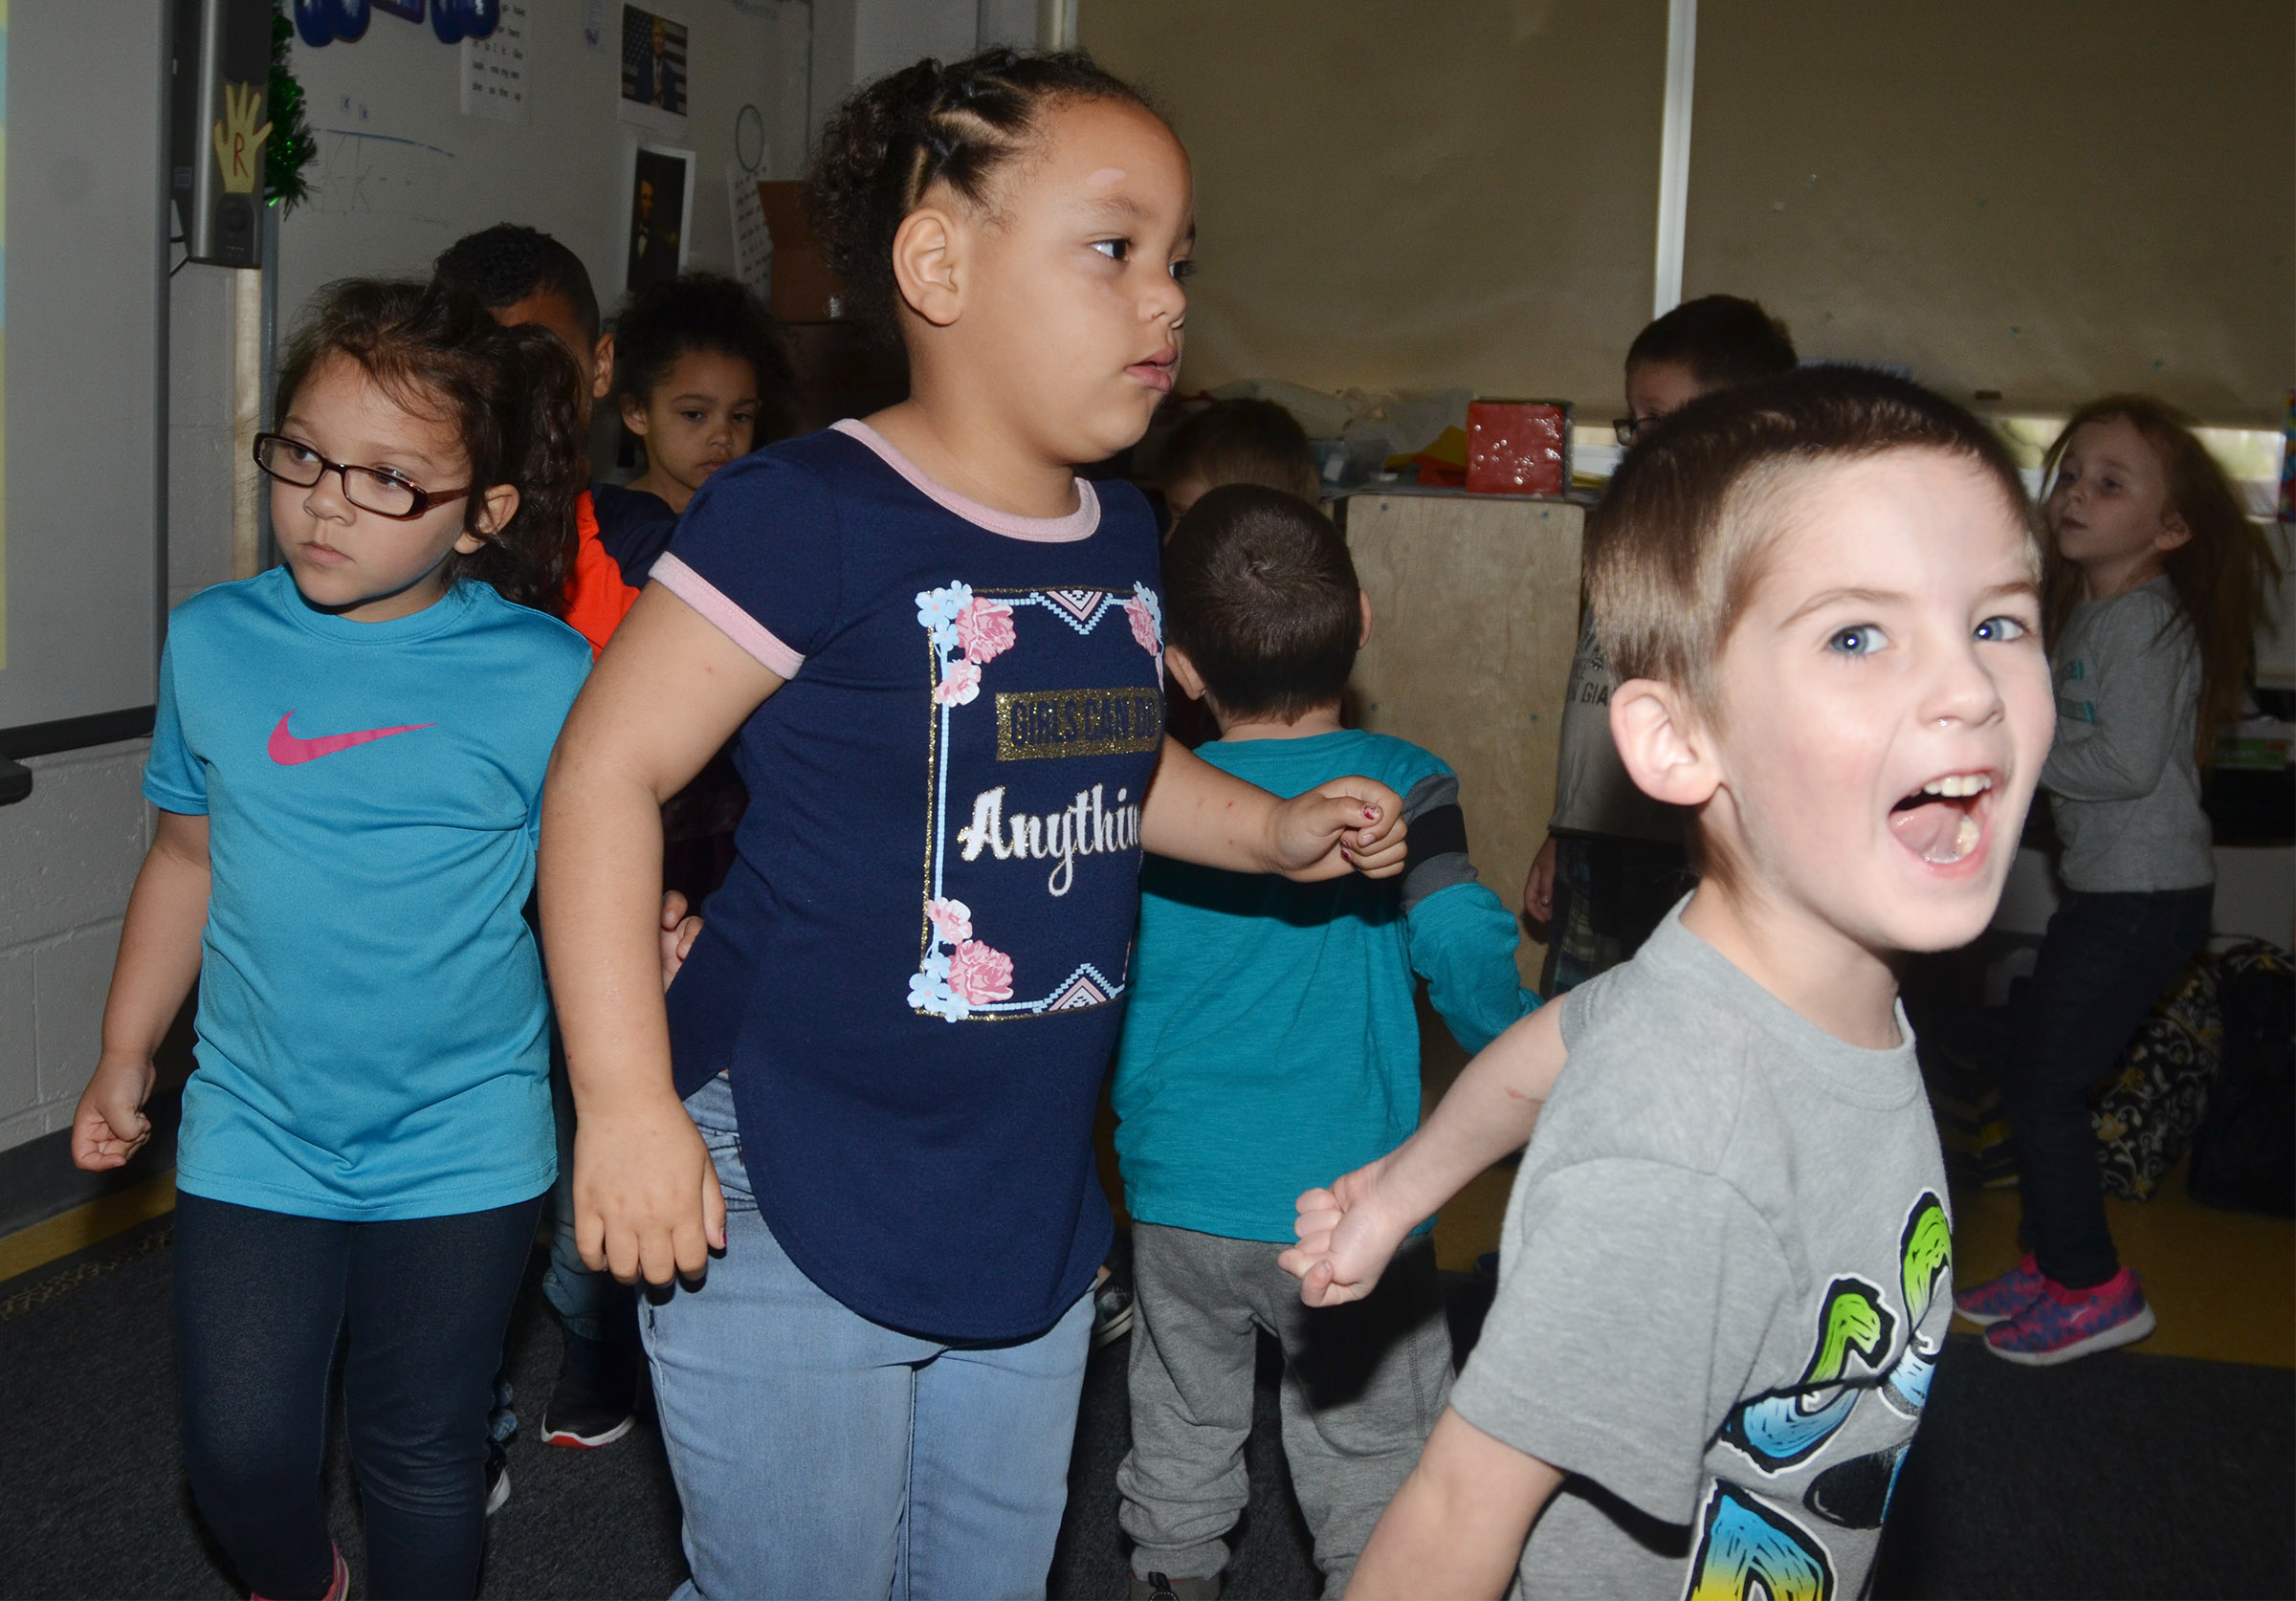 CES preschool student Charlie Woodbury has fun as he and his classmates dance together.